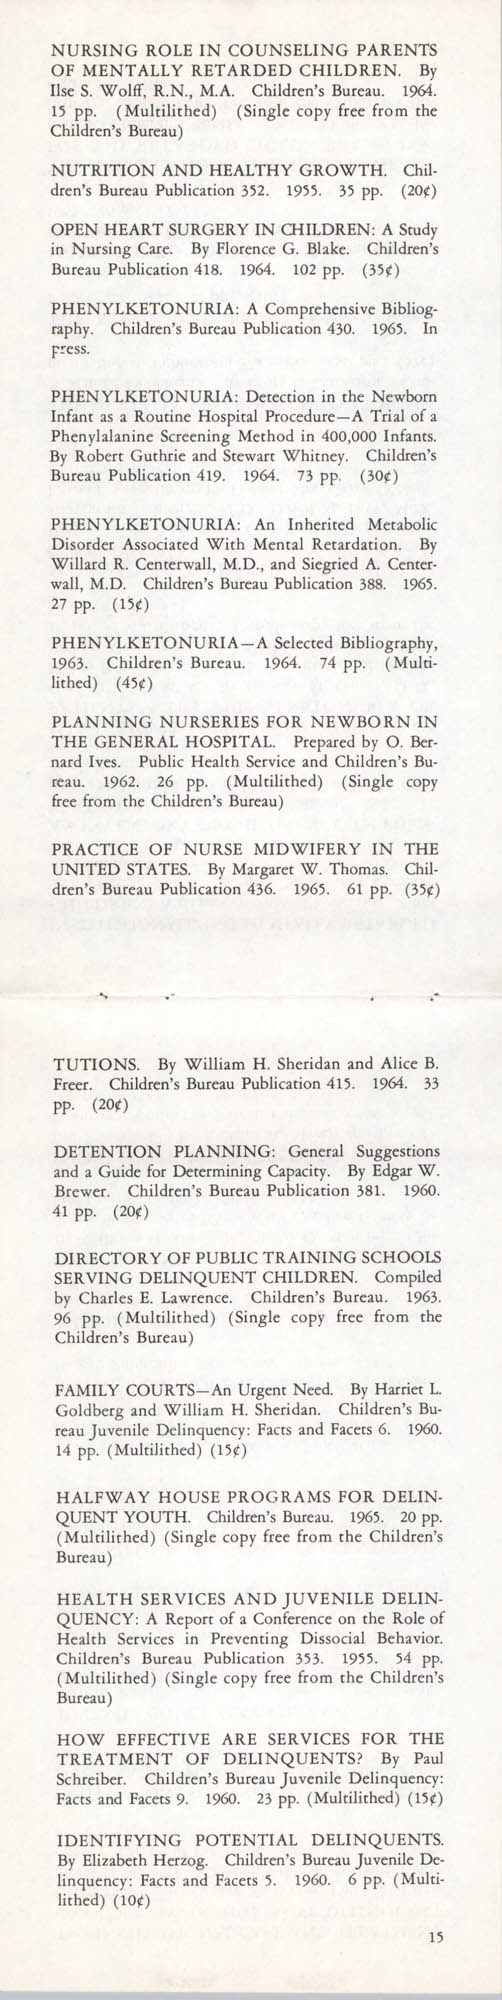 Publications of the Children's Bureau, Page 15